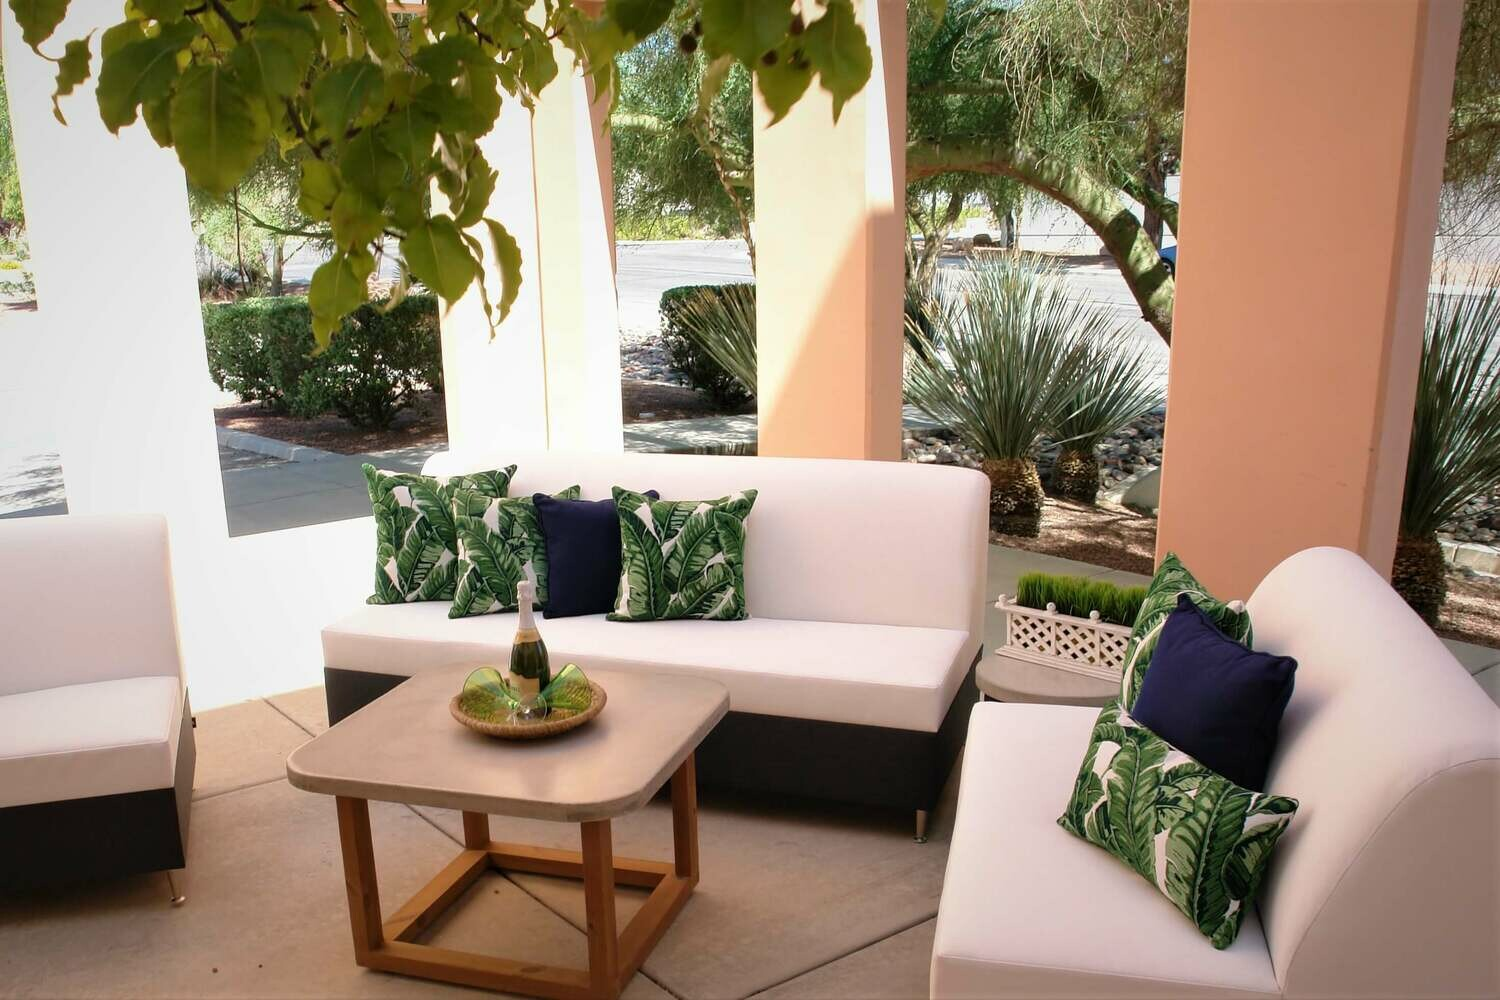 Resort Style 4 Piece Seating Set- 1 Sofa, 1 Loveseat, 1 Corner Chair, 1 Scround Table